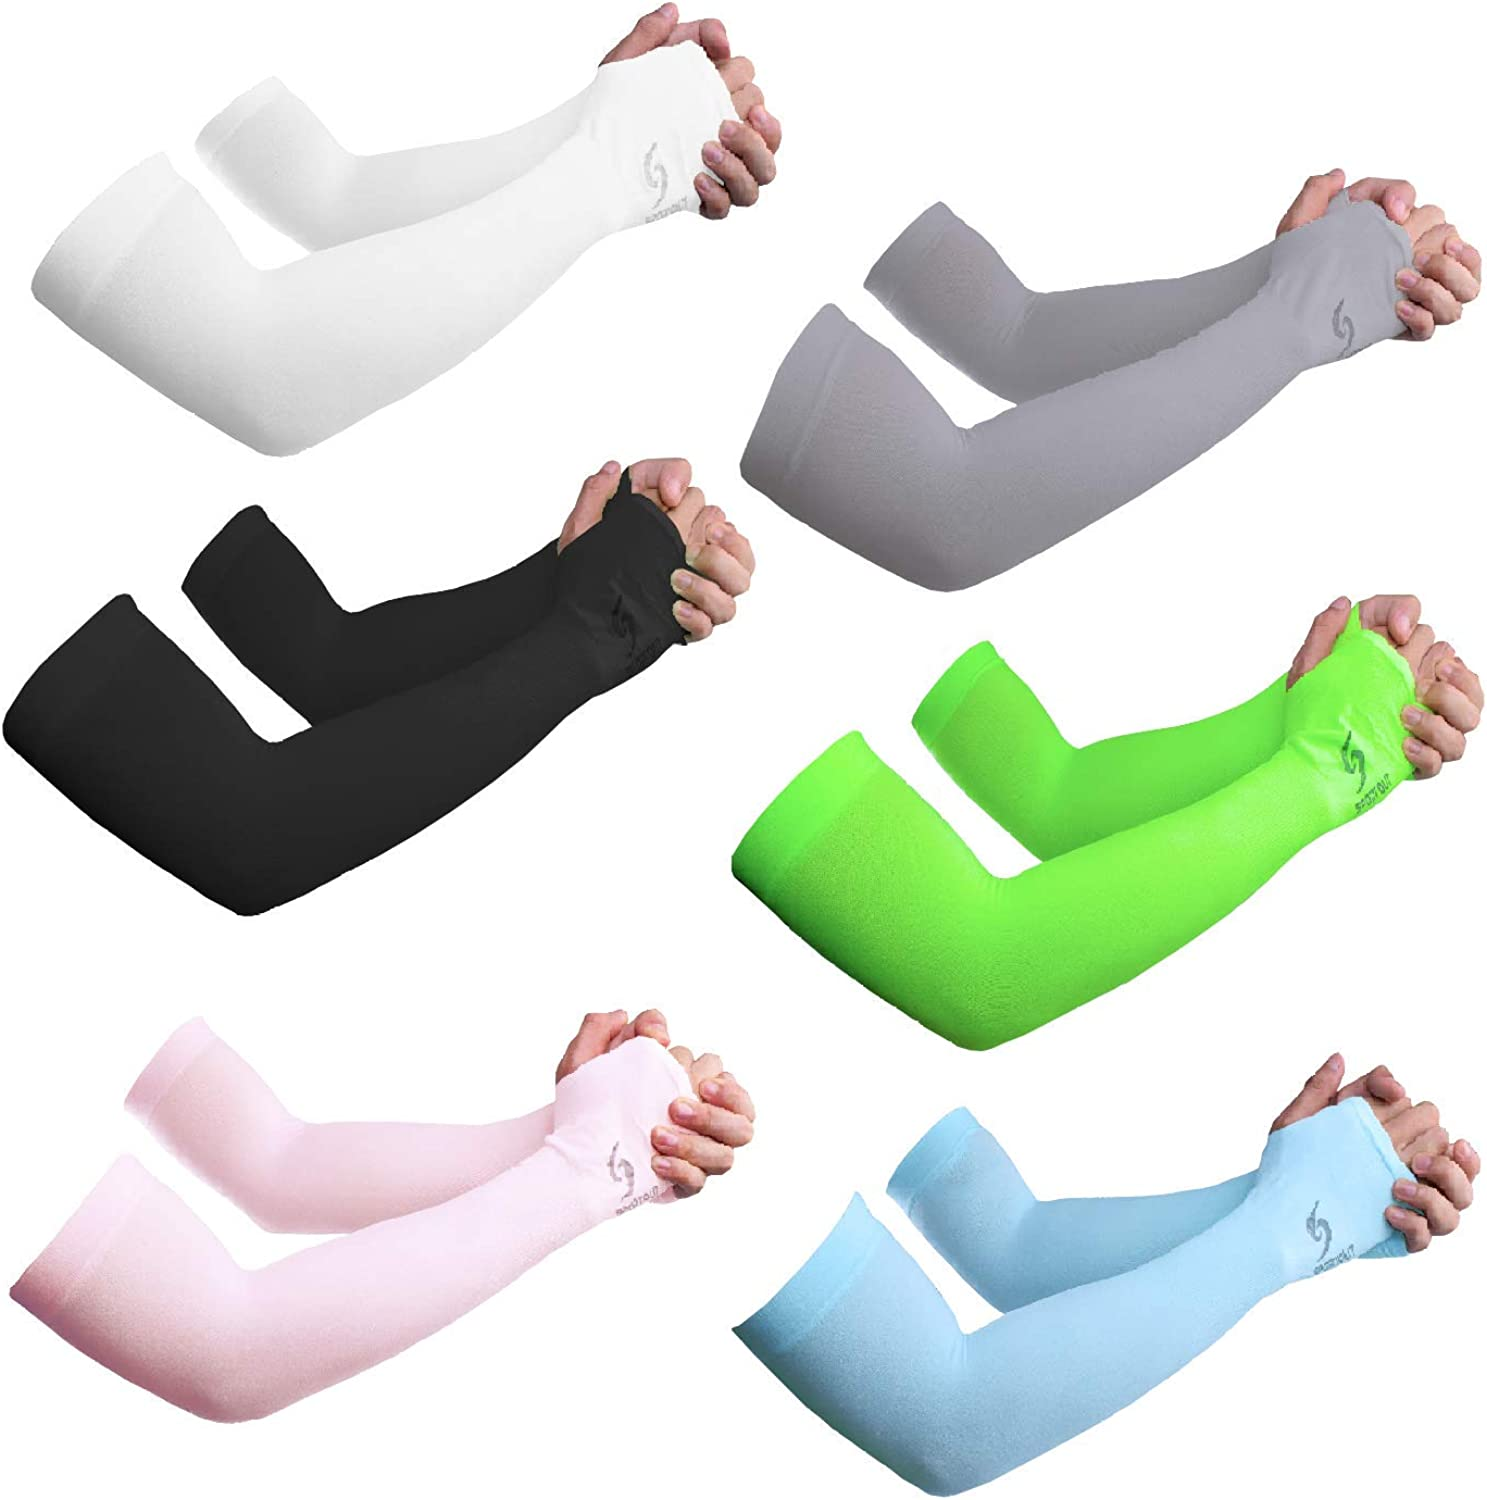 Sportout Unisex UV Protection Cooling Arm Sleeves, Ultra-long Tattoo Cover Sleeves,Arm Sleeves Sun Protection